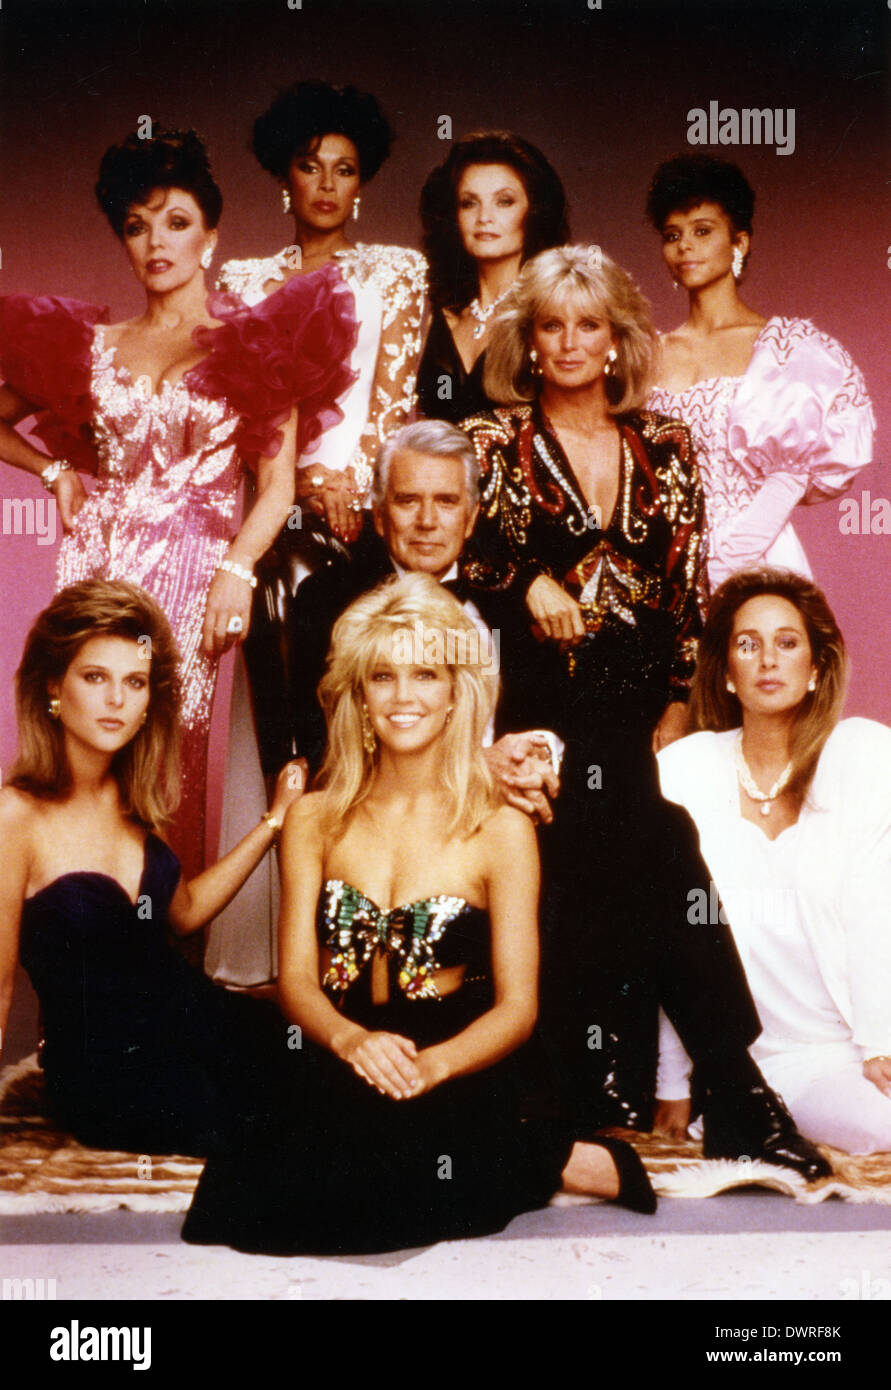 DYNASTY  US TV series from Aaron Spelling Productions - Stock Image